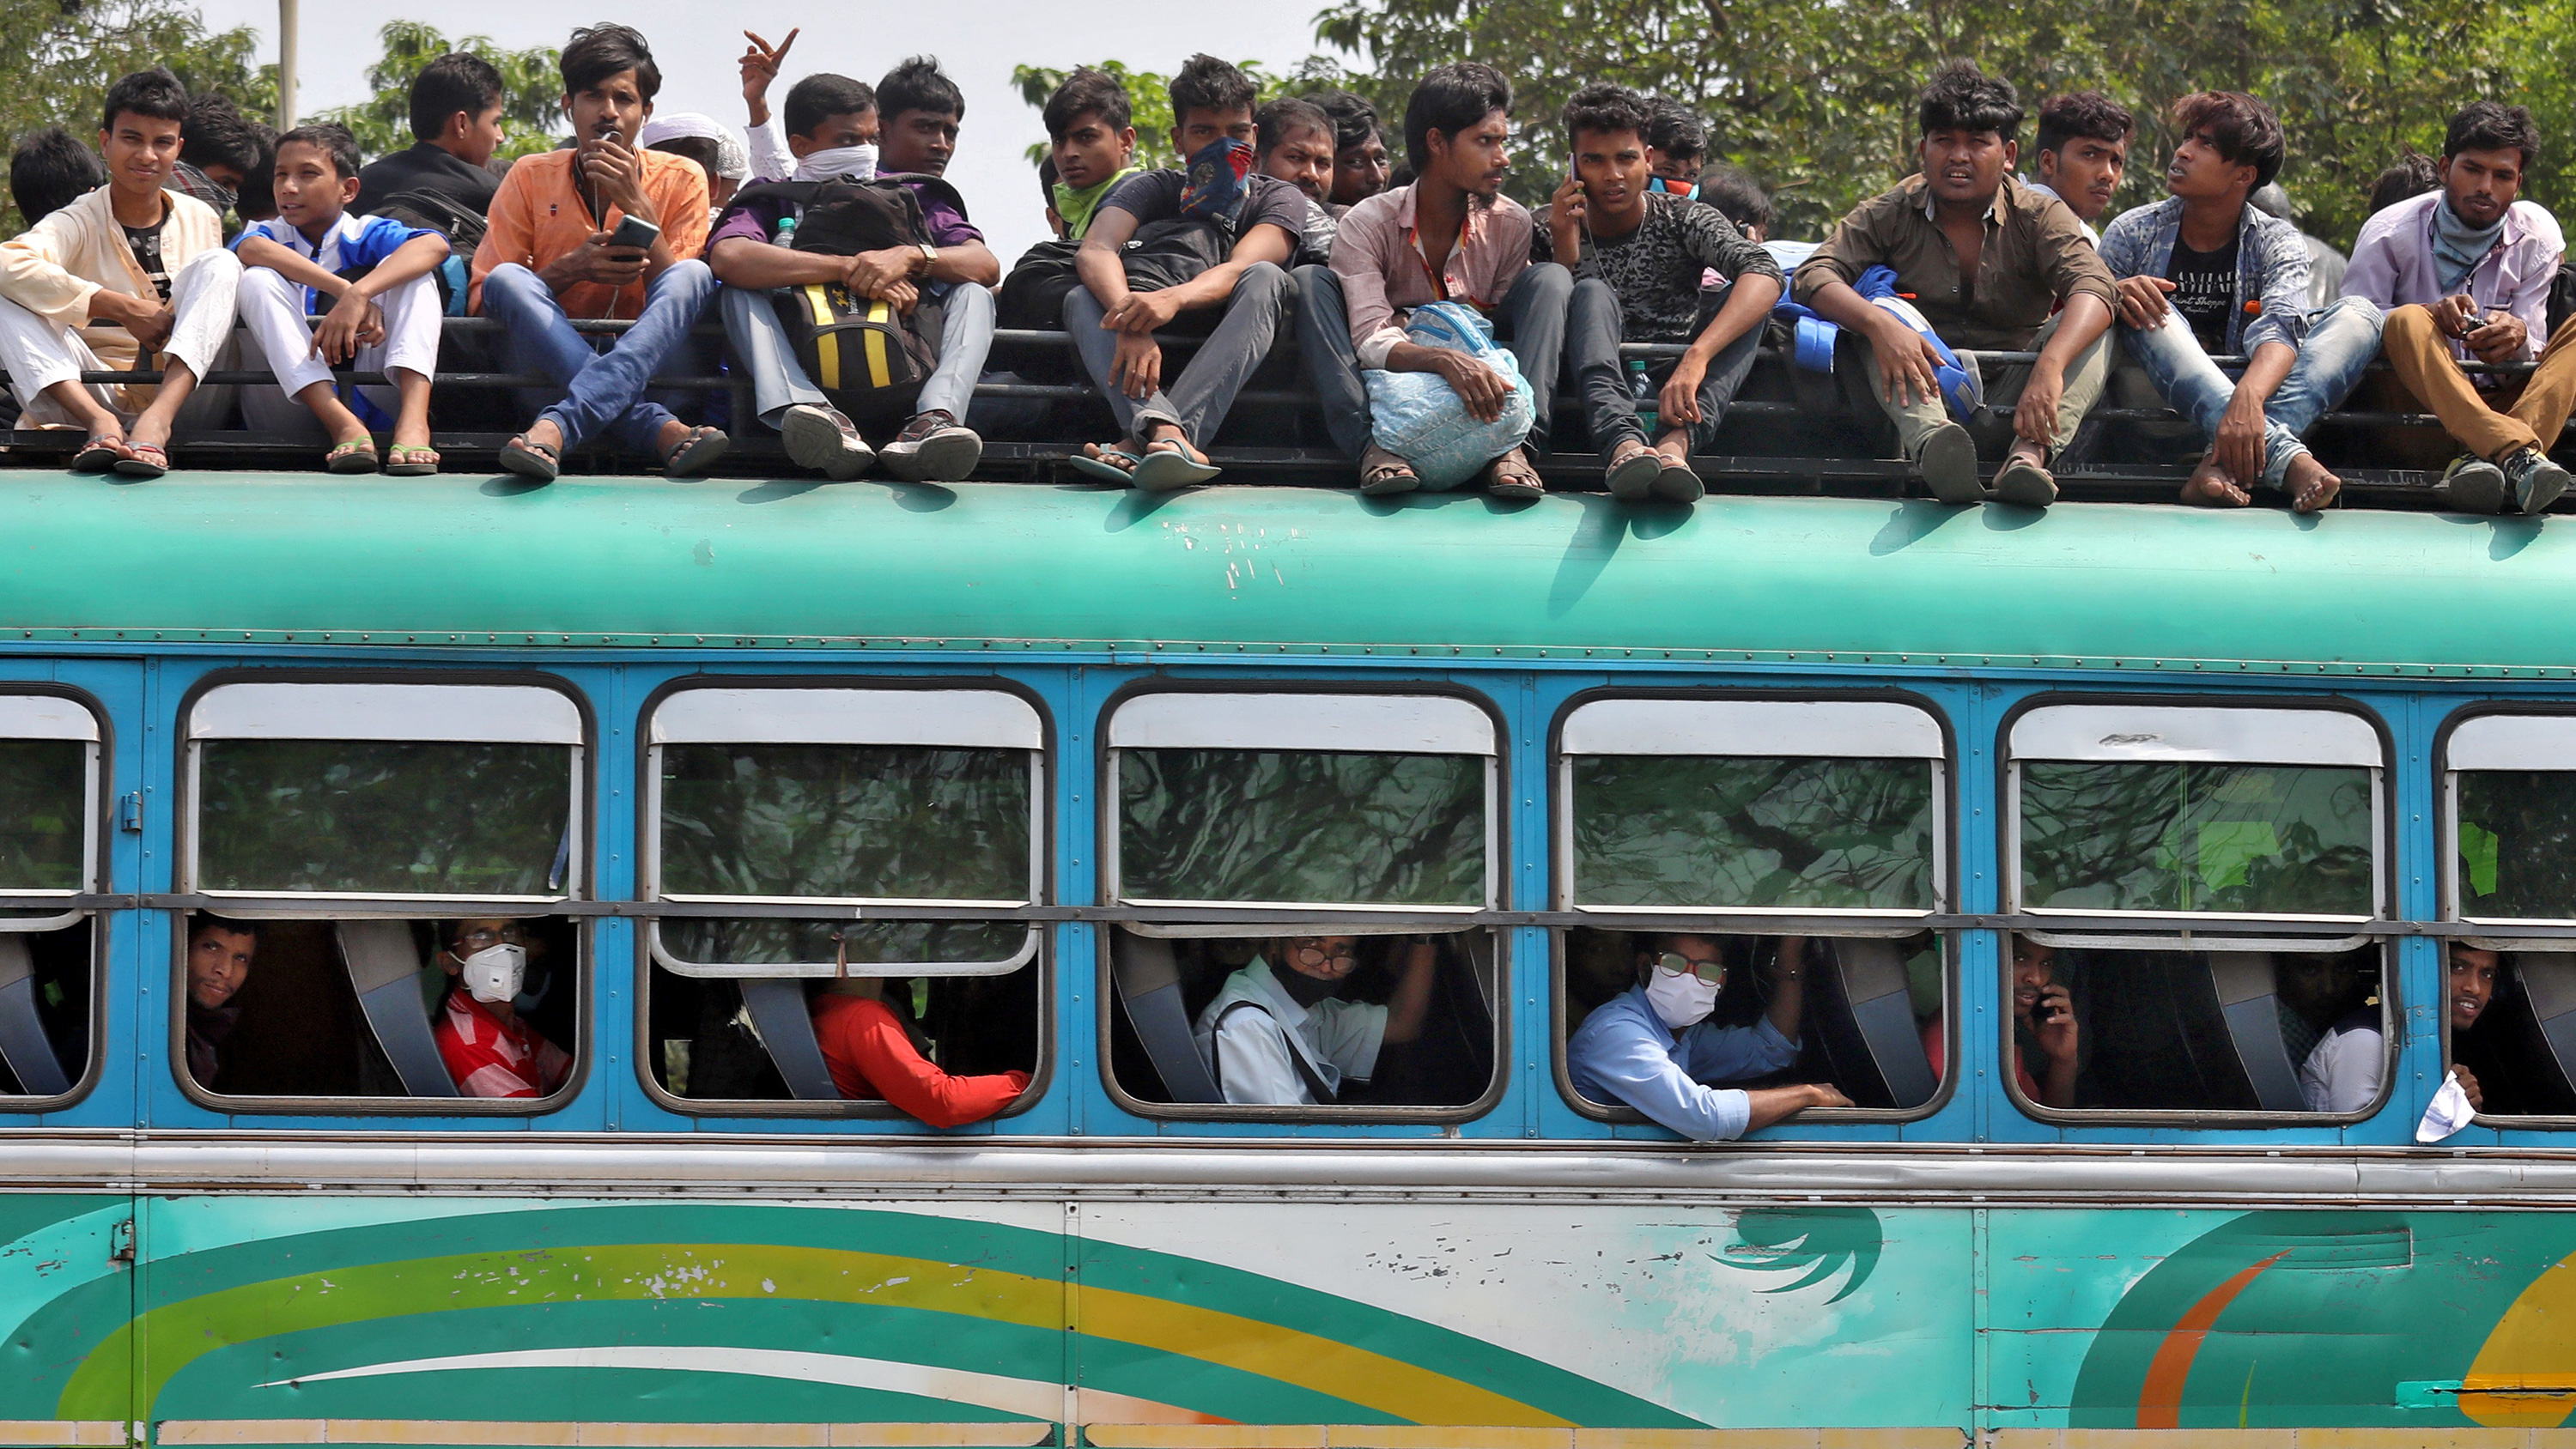 The image shows a green bus, its seats full, with many people sitting on top of the vehicle.